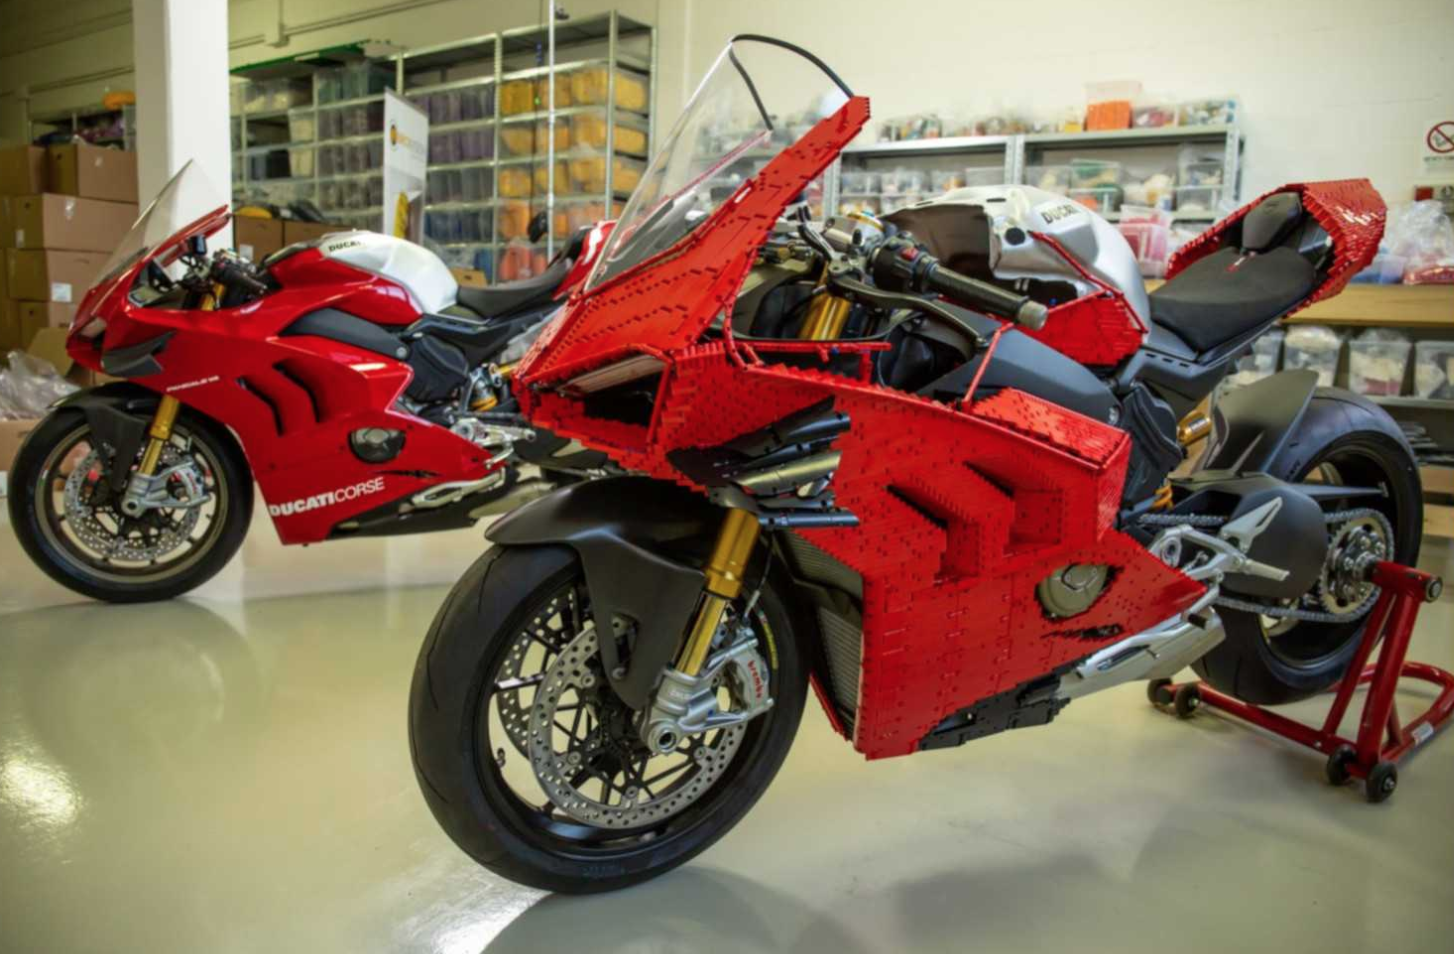 Lego built a functioning Ducati motorcycle out of 15,000 building blocks